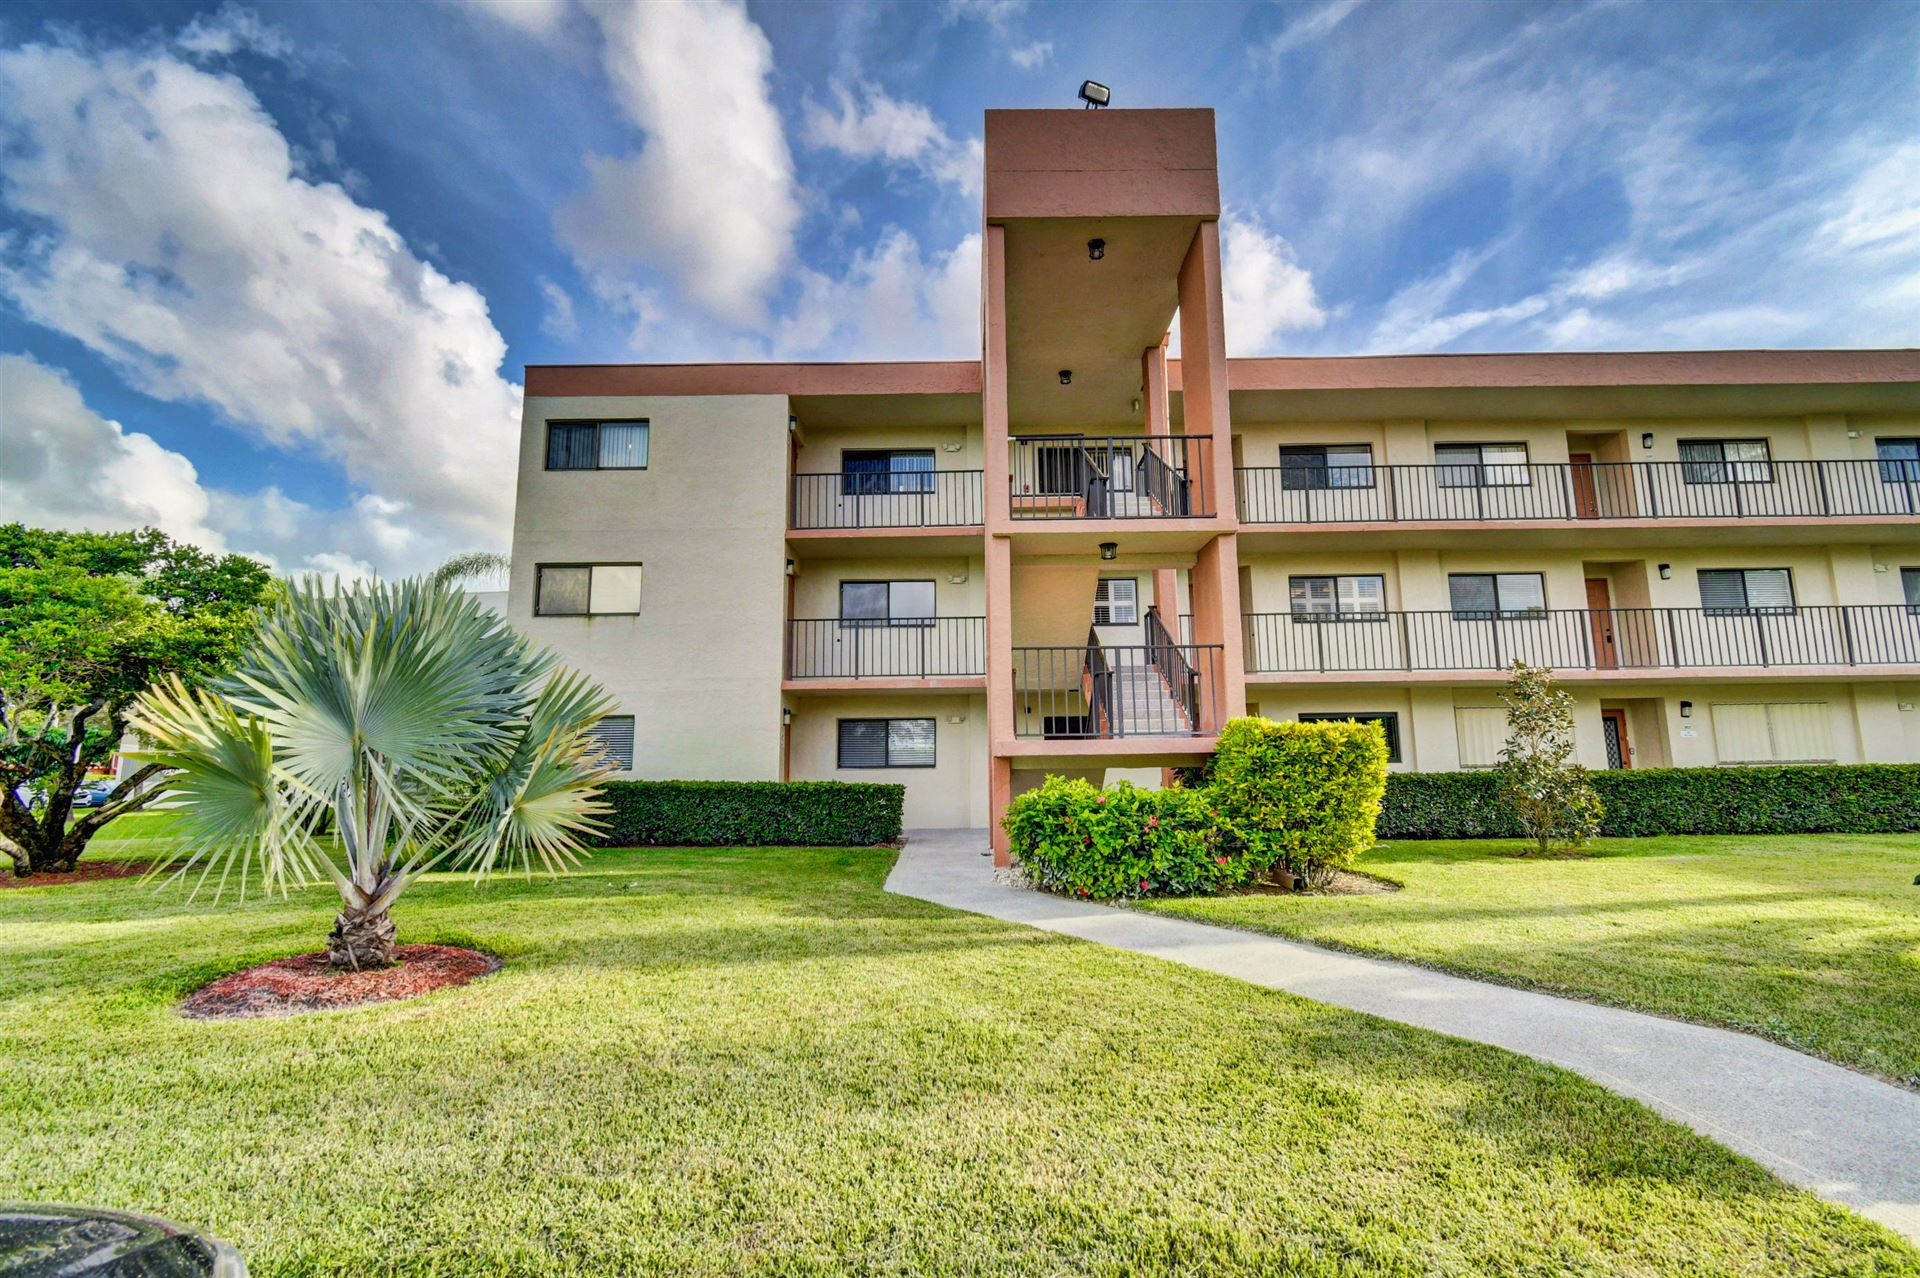 Photo of 5598 Witney Drive #301, Delray Beach, FL 33484 (MLS # RX-10657970)